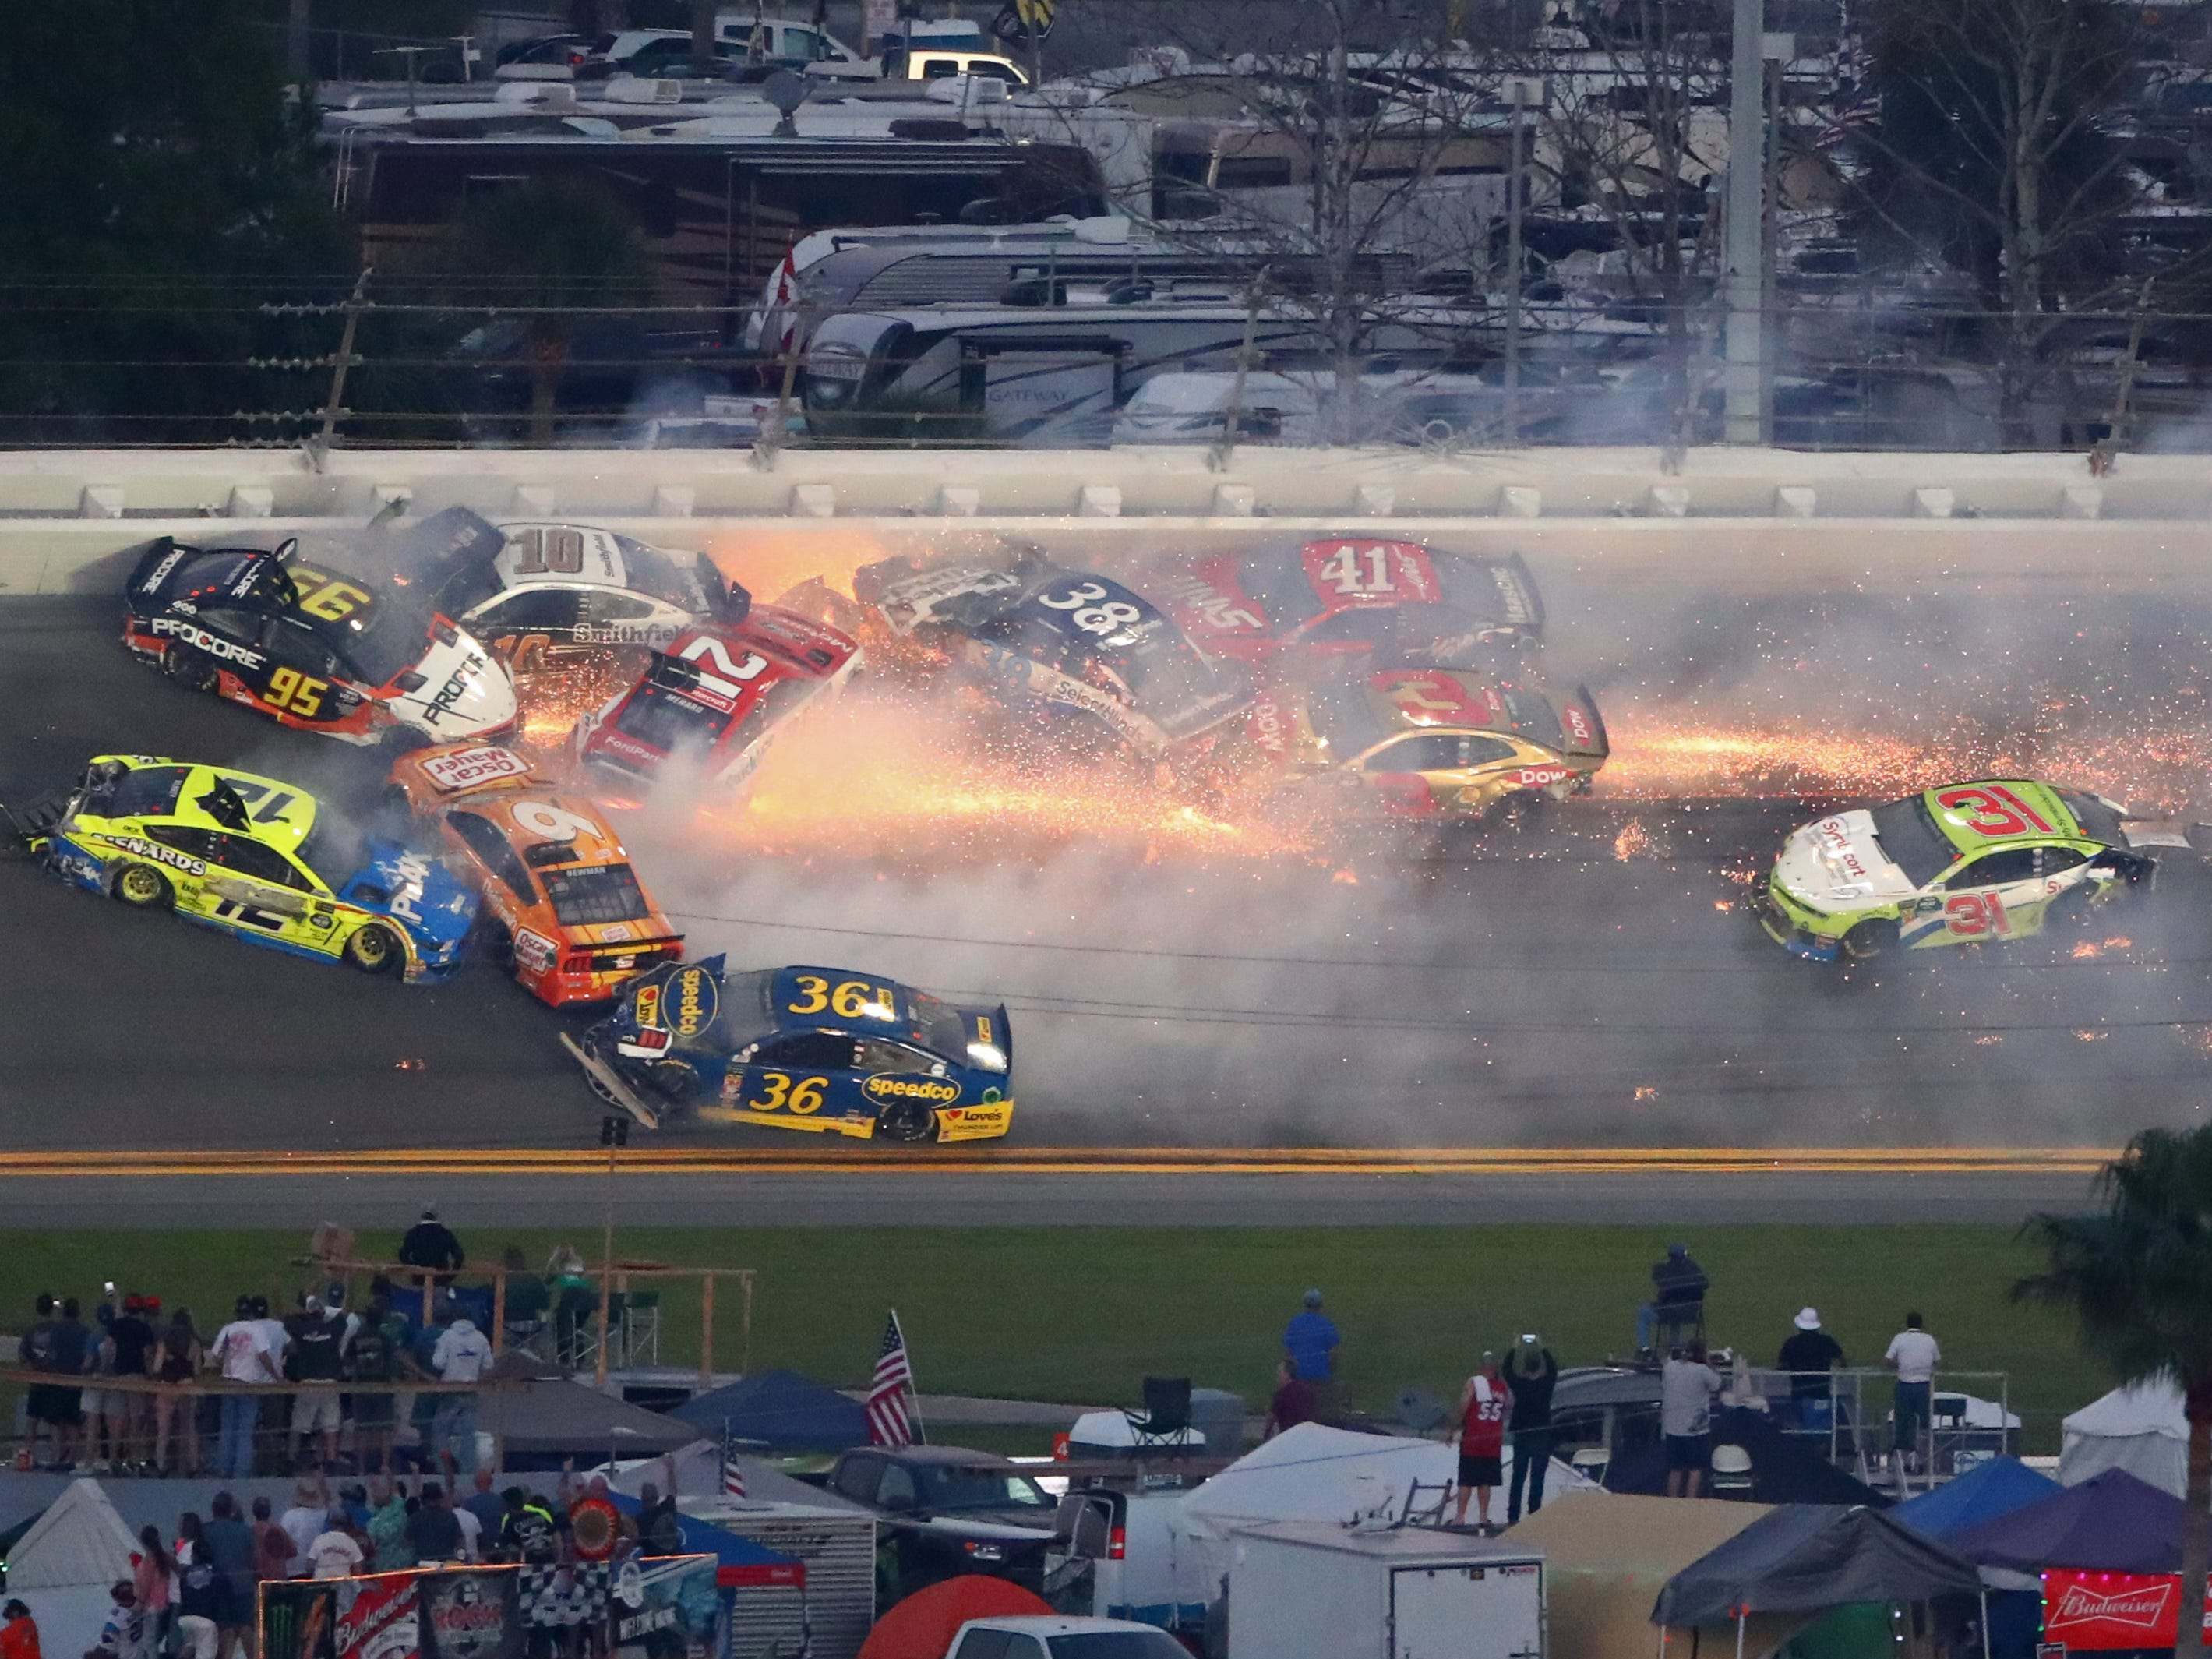 NASCAR Cup Series drivers Ryan Blaney (12), Aric Almirola (10), Paul Menard (21), NASCAR Cup Series driver David Ragan (38), Austin Dillon (3), Daniel Suarez (41), Matt Dibenedetto (95), Tyler Reddick (31),  and Ryan Newman (6) crash during the Daytona 500 at Daytona International Speedway.